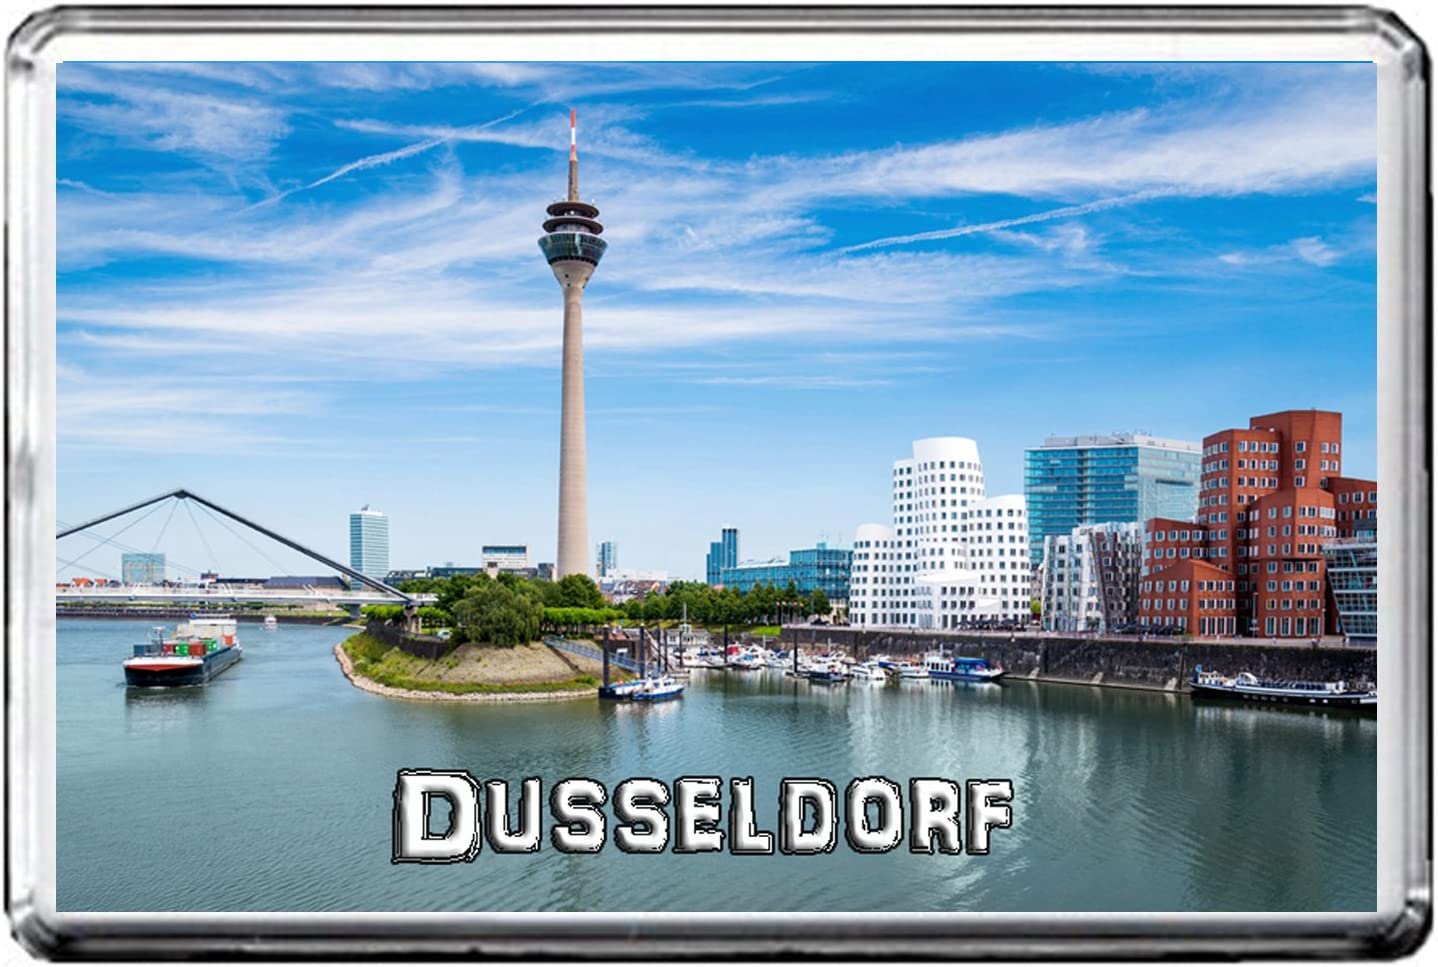 GERMANY ATTRACTIONS 0382 DUSSELDORF AIMANT POUR LE FRIGO THE CITY OF GERMANY REFRIGERATOR MAGNET GERMANY LANDMARKS